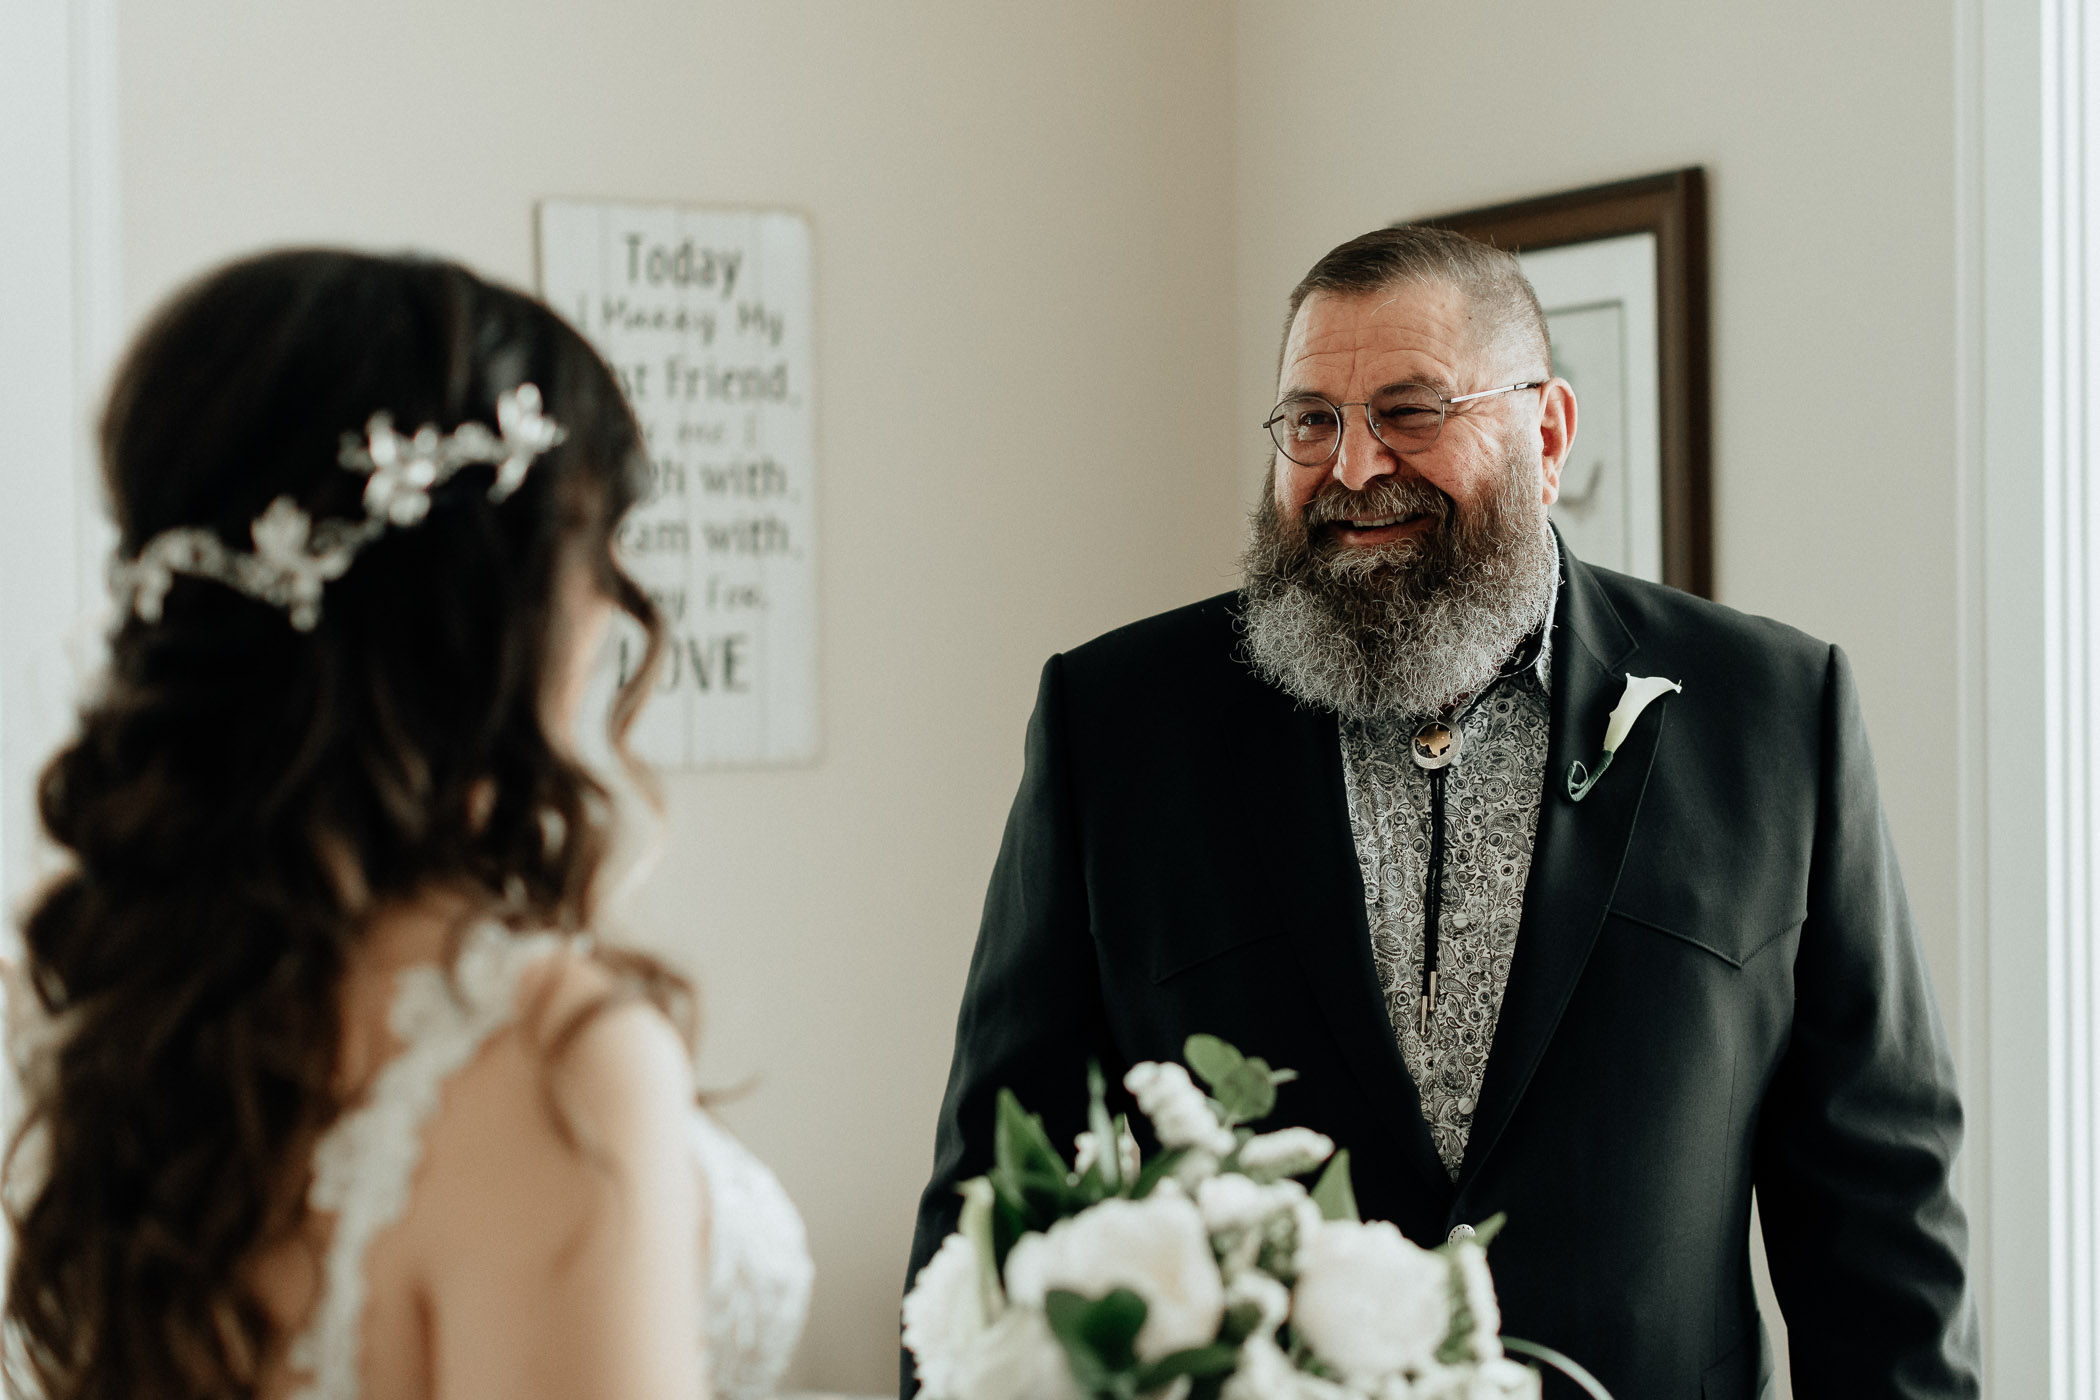 Brides dad getting emotional before walking her down the aisle on her wedding day